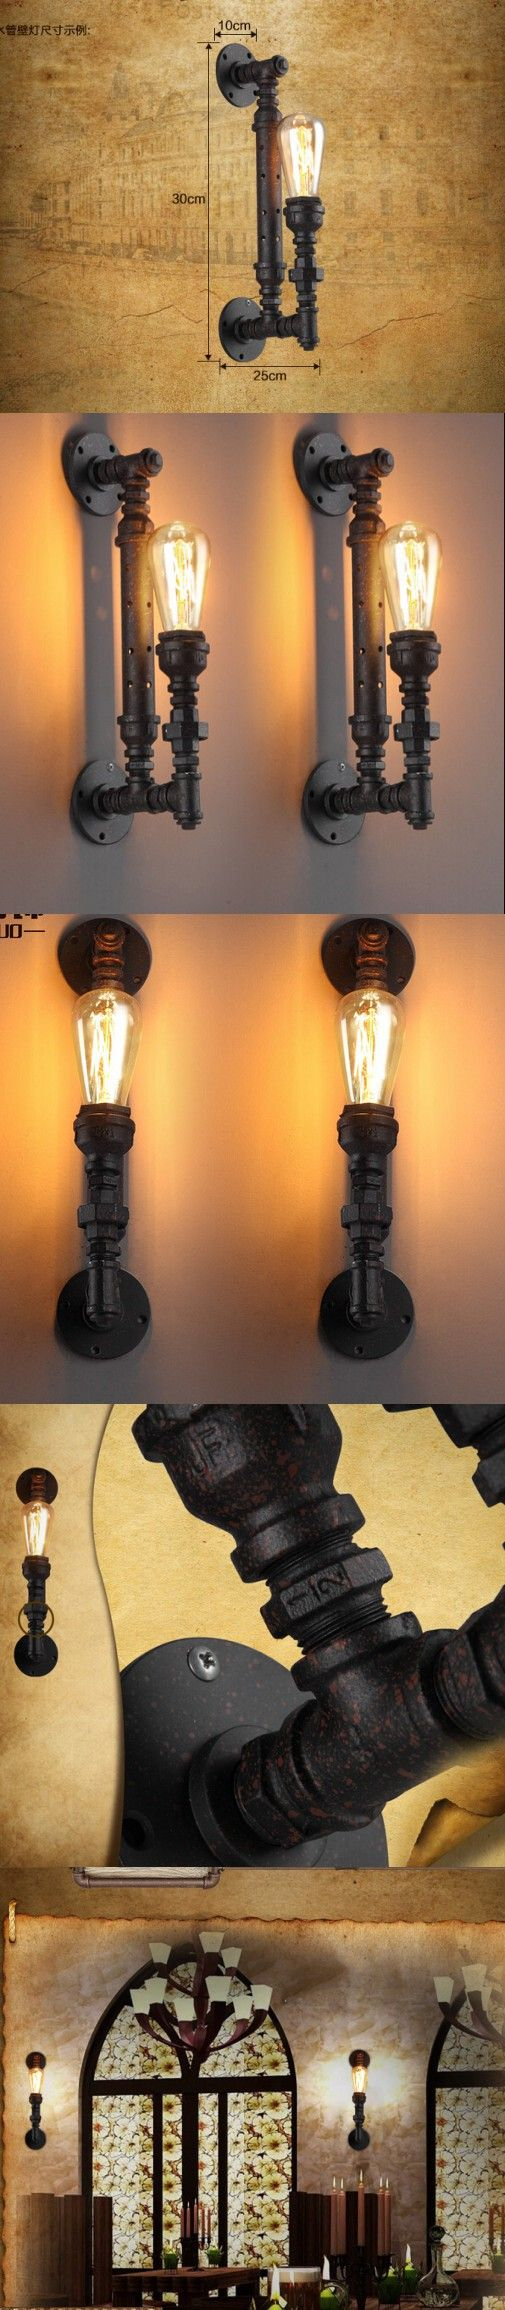 Vintage Industrial Pipe Wall Lamps Sconce Lights Home Decoration E27 Edison Bulb